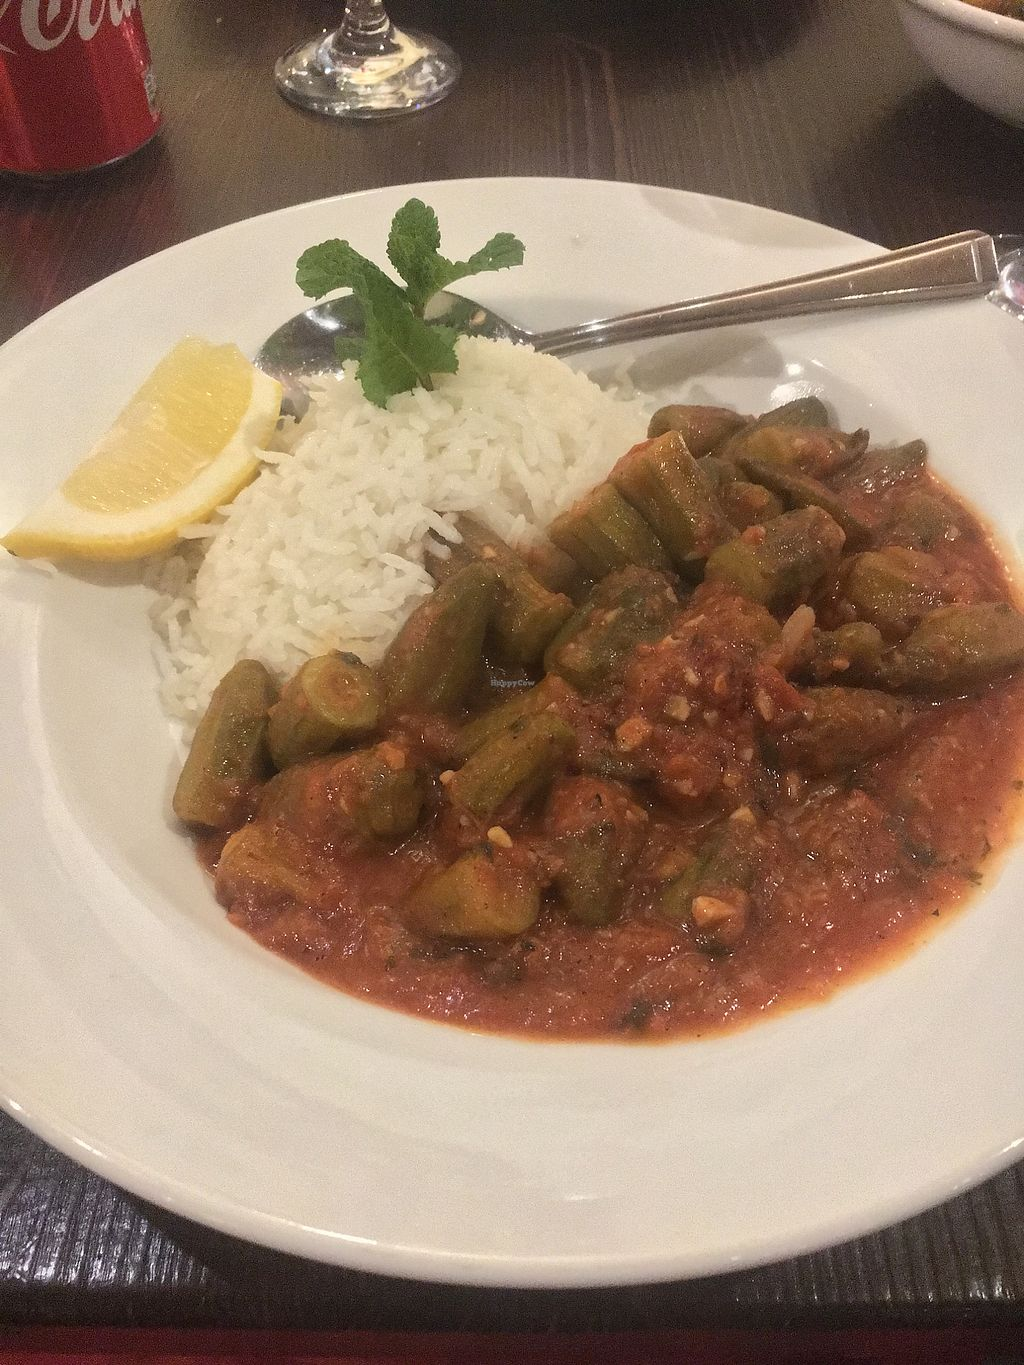 """Photo of Jeitta  by <a href=""""/members/profile/dmcm"""">dmcm</a> <br/>BAMIA B'ZEIT - Okra cooked with coriander, garlic, tomatoes, onions & olive oil <br/> December 13, 2017  - <a href='/contact/abuse/image/55080/335291'>Report</a>"""